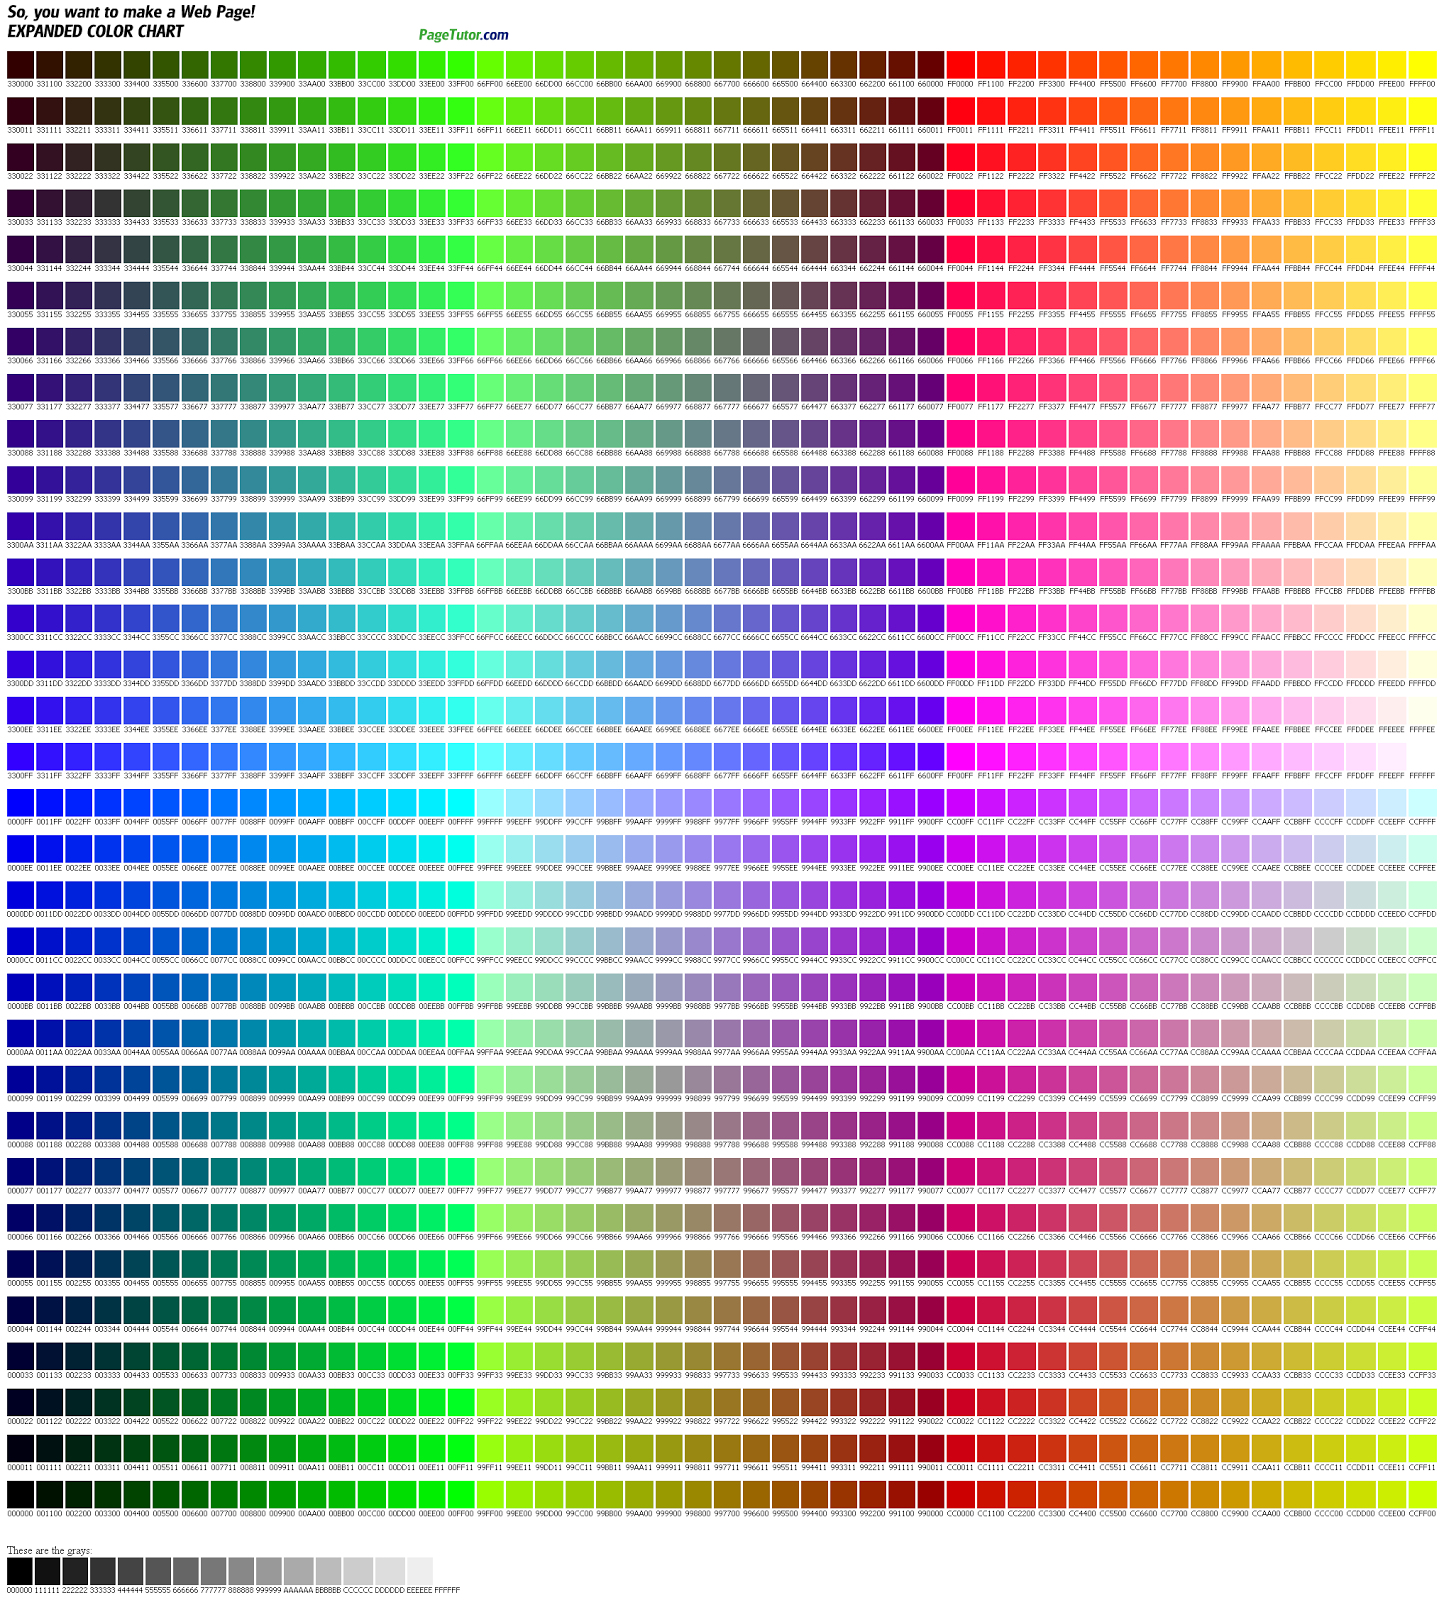 What Colors Go Well Together Interior Design Image Search